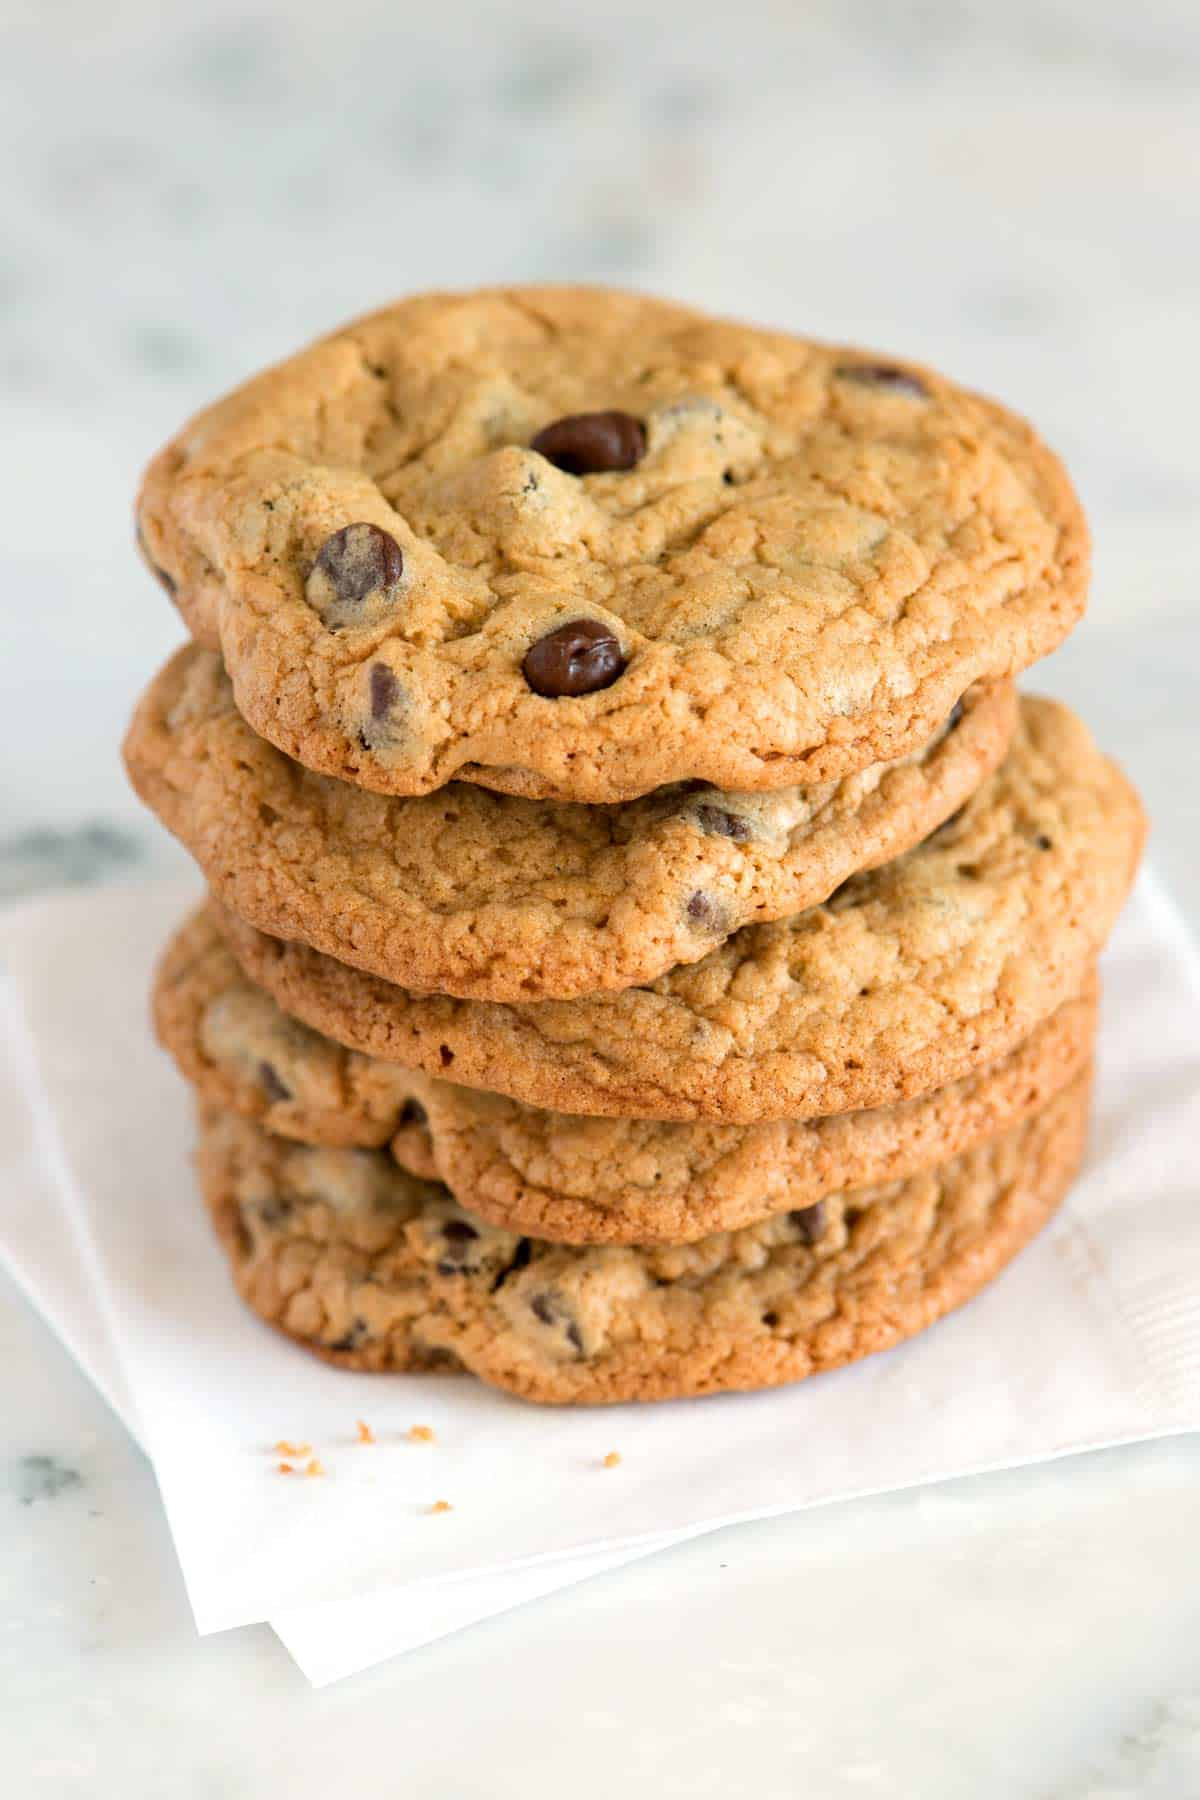 These chocolate chip cookies are easy to make. We prefer to use our stand mixer, but you can also make these cookies with a handheld mixer.